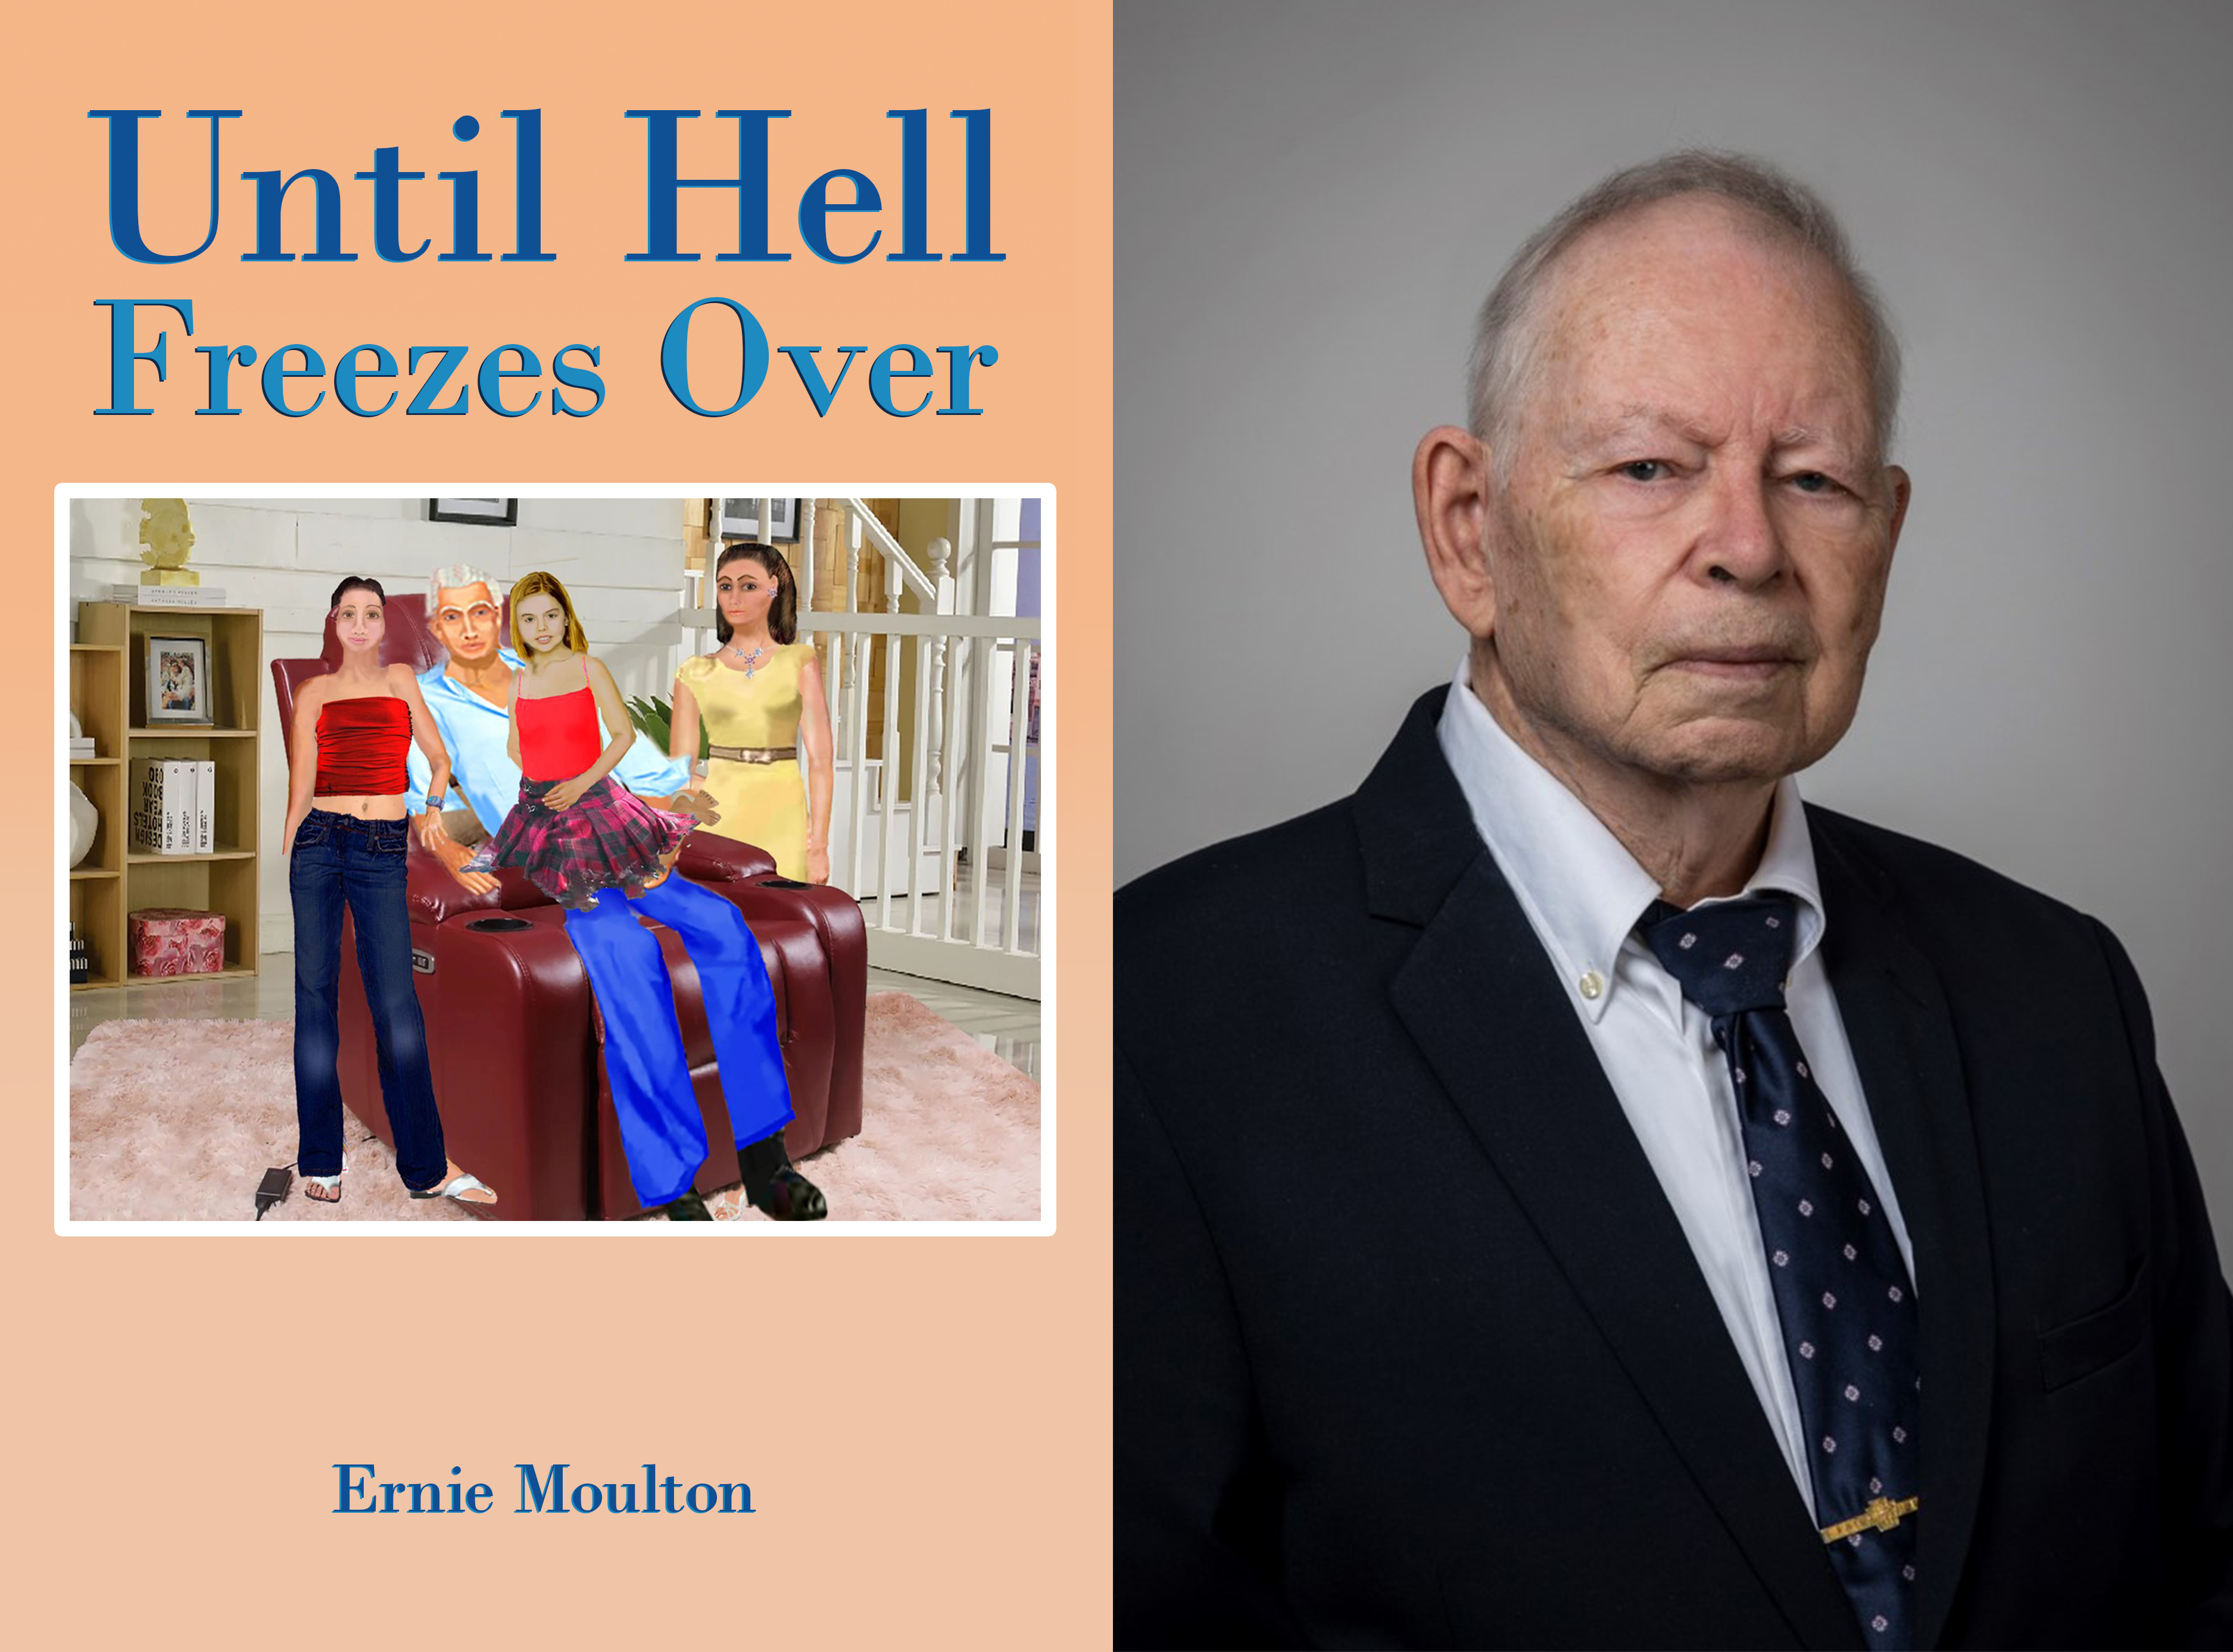 Ernie Moulton's Latest Mystery Novel 'Until Hell Freezes Over 'Is Out Now